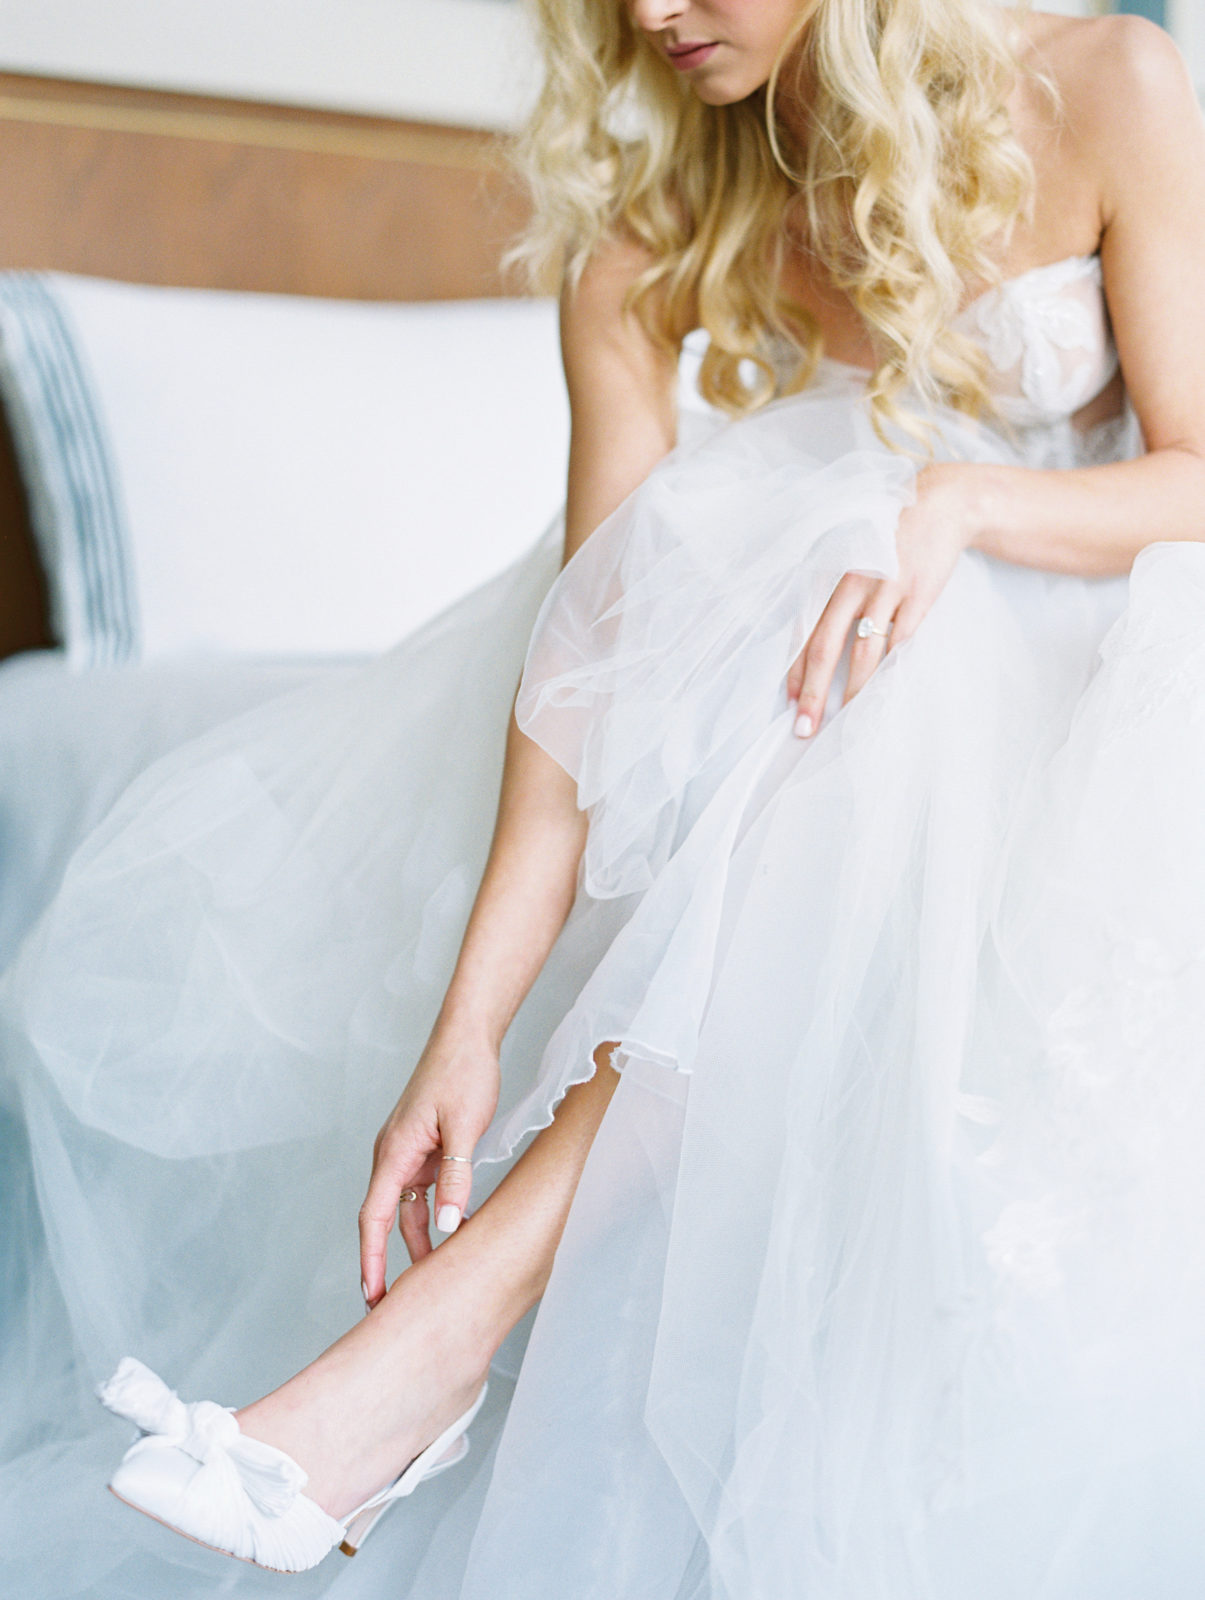 White bow tie wedding shoes from Loeffler Randall